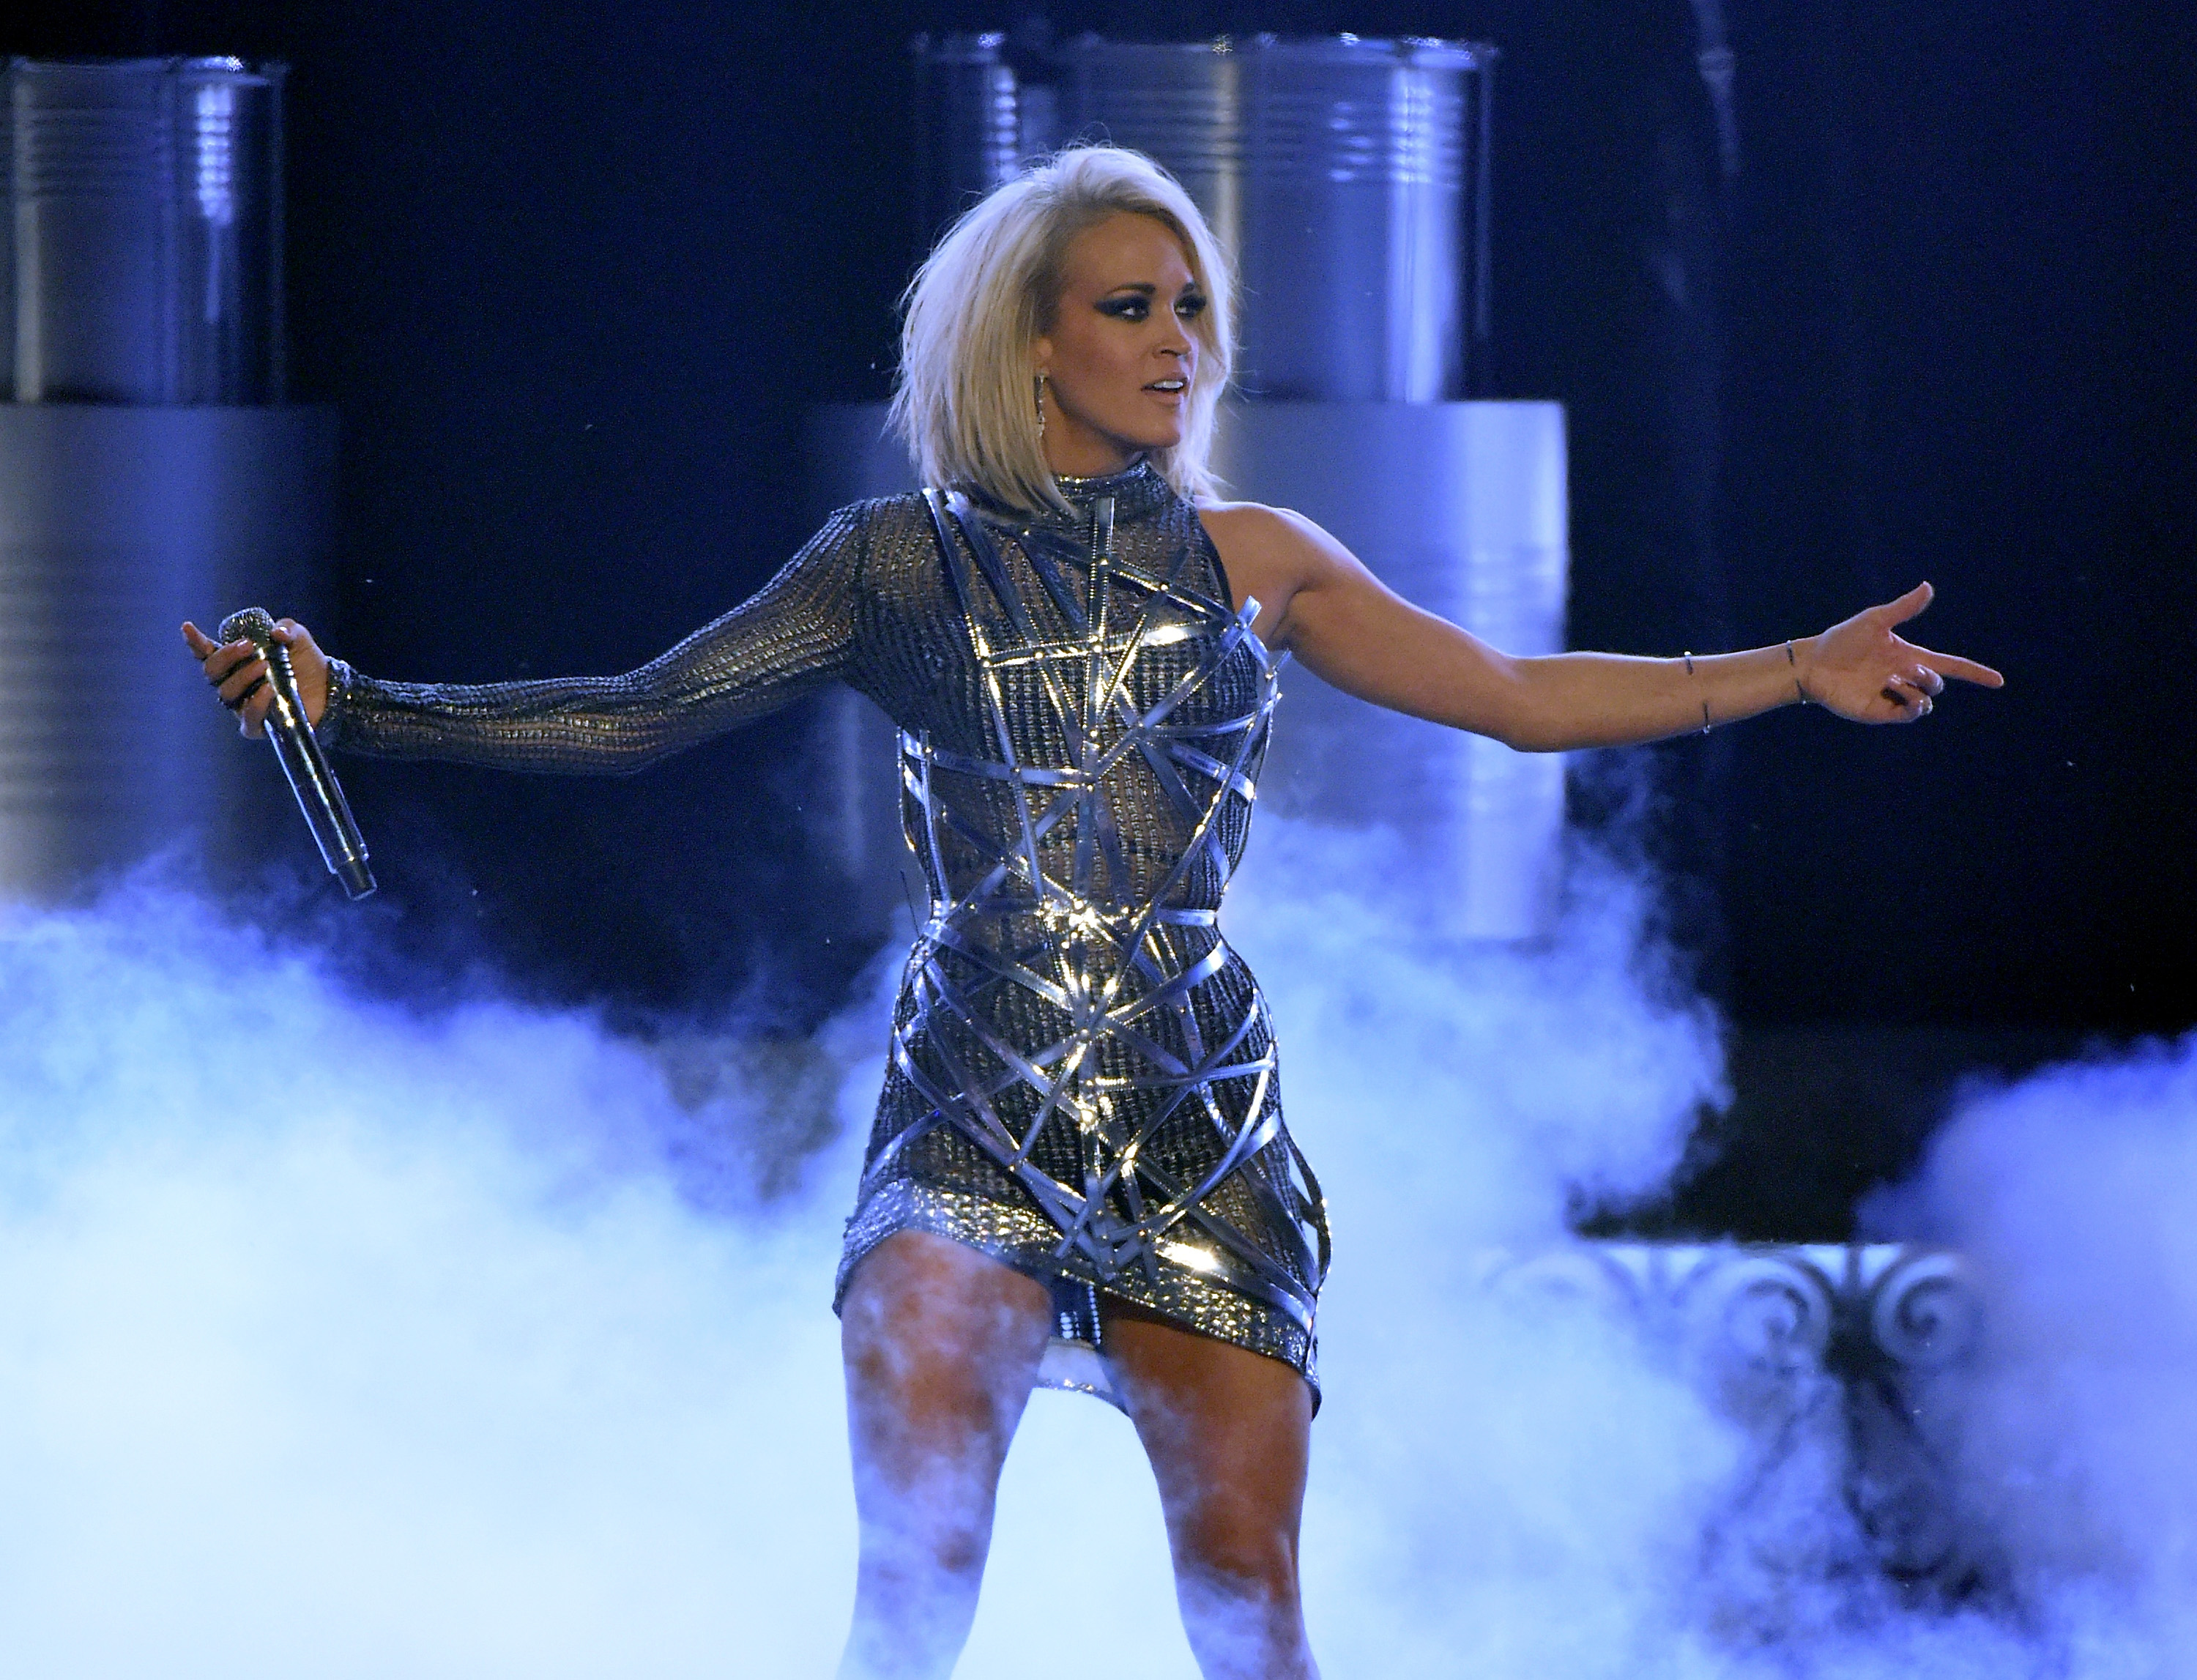 Carrie Underwood performs during the 51st Academy of Country Music Awards at MGM Grand Garden Arena on April 3, 2016 in Las Vegas